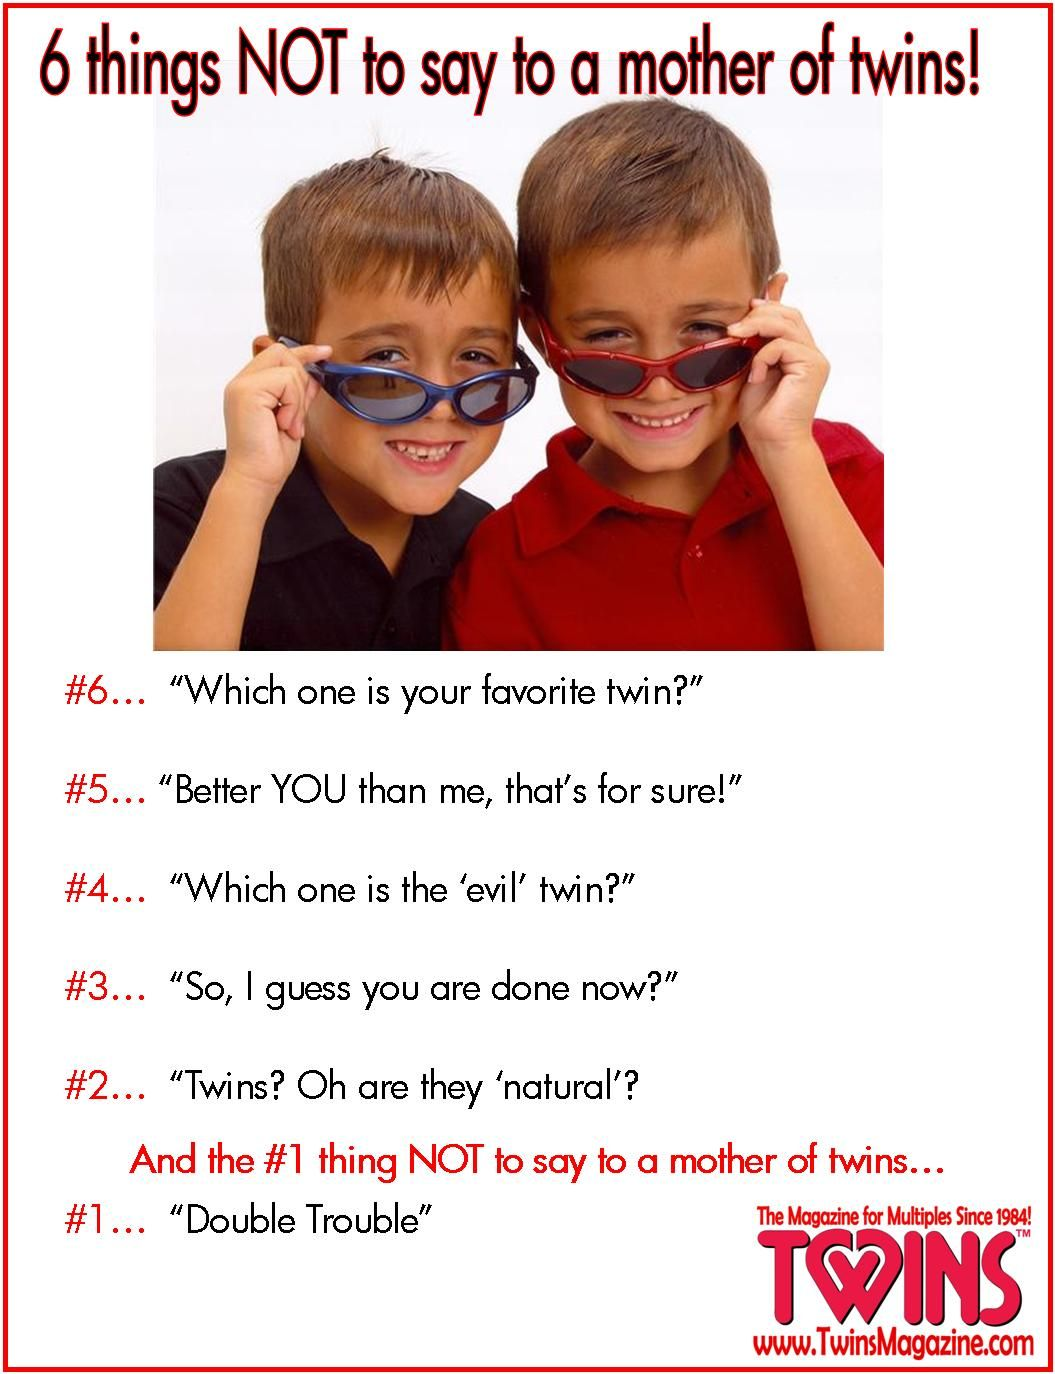 6 things NOT to say to a mother of twins! Twin quotes